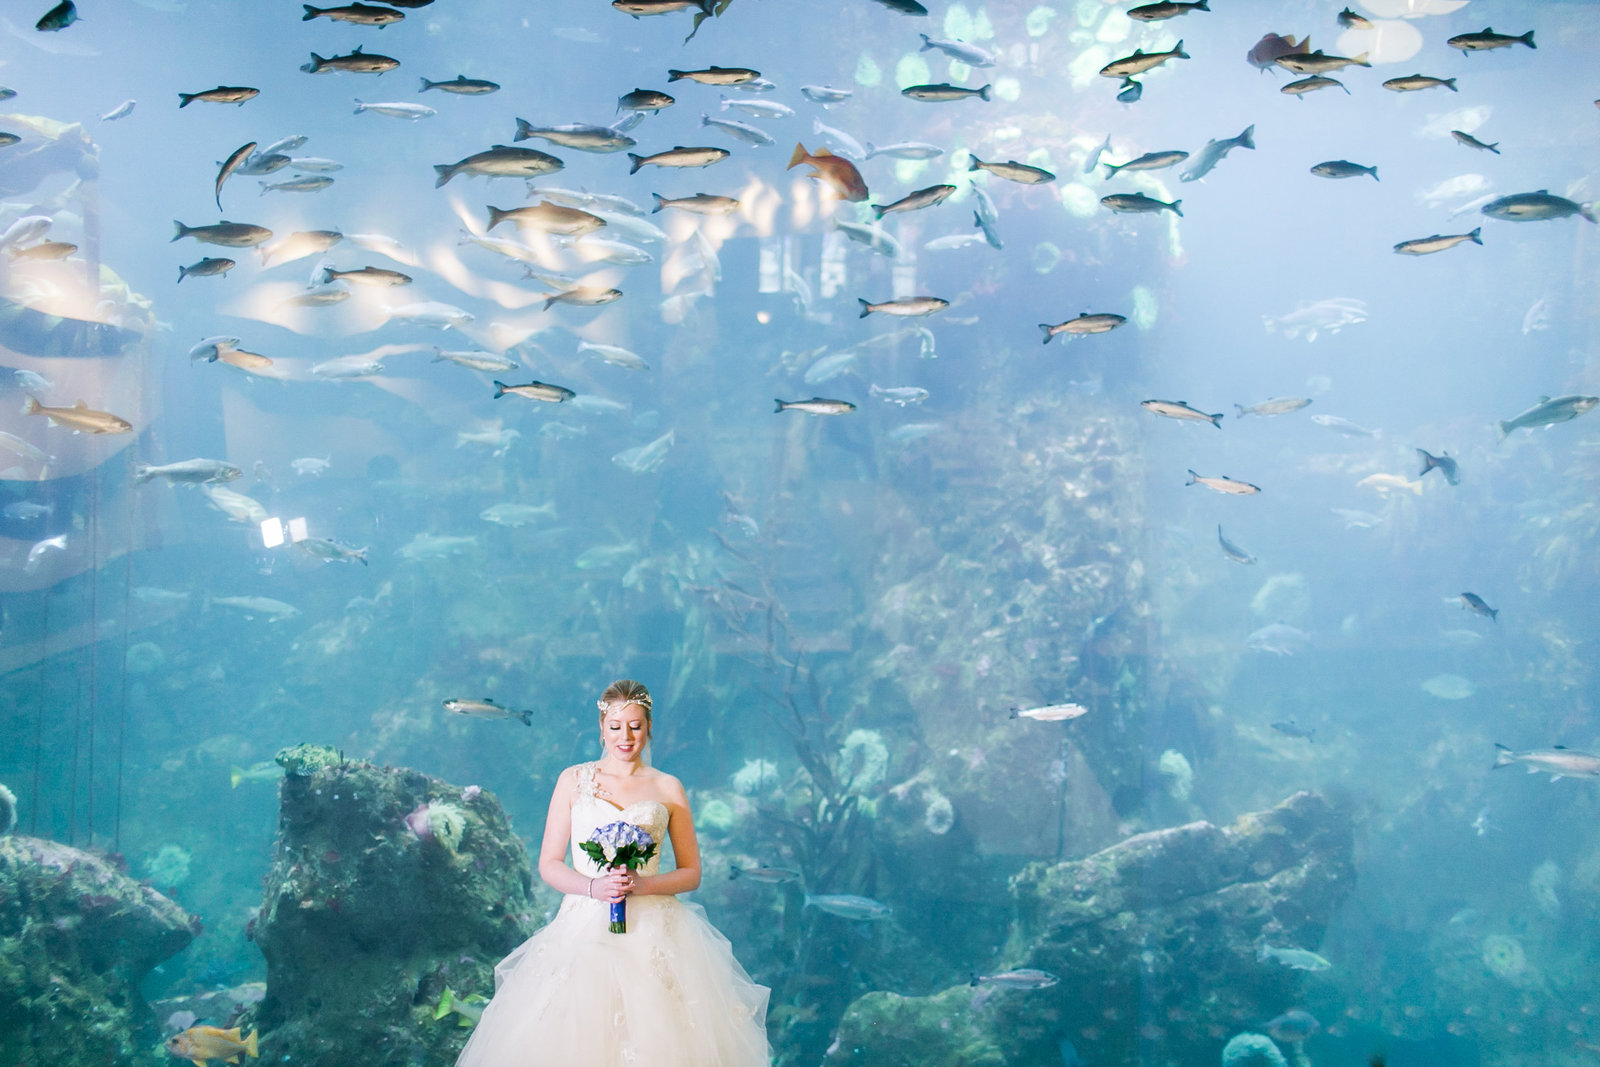 michael-jody-seattle-aquarium-wedding451435